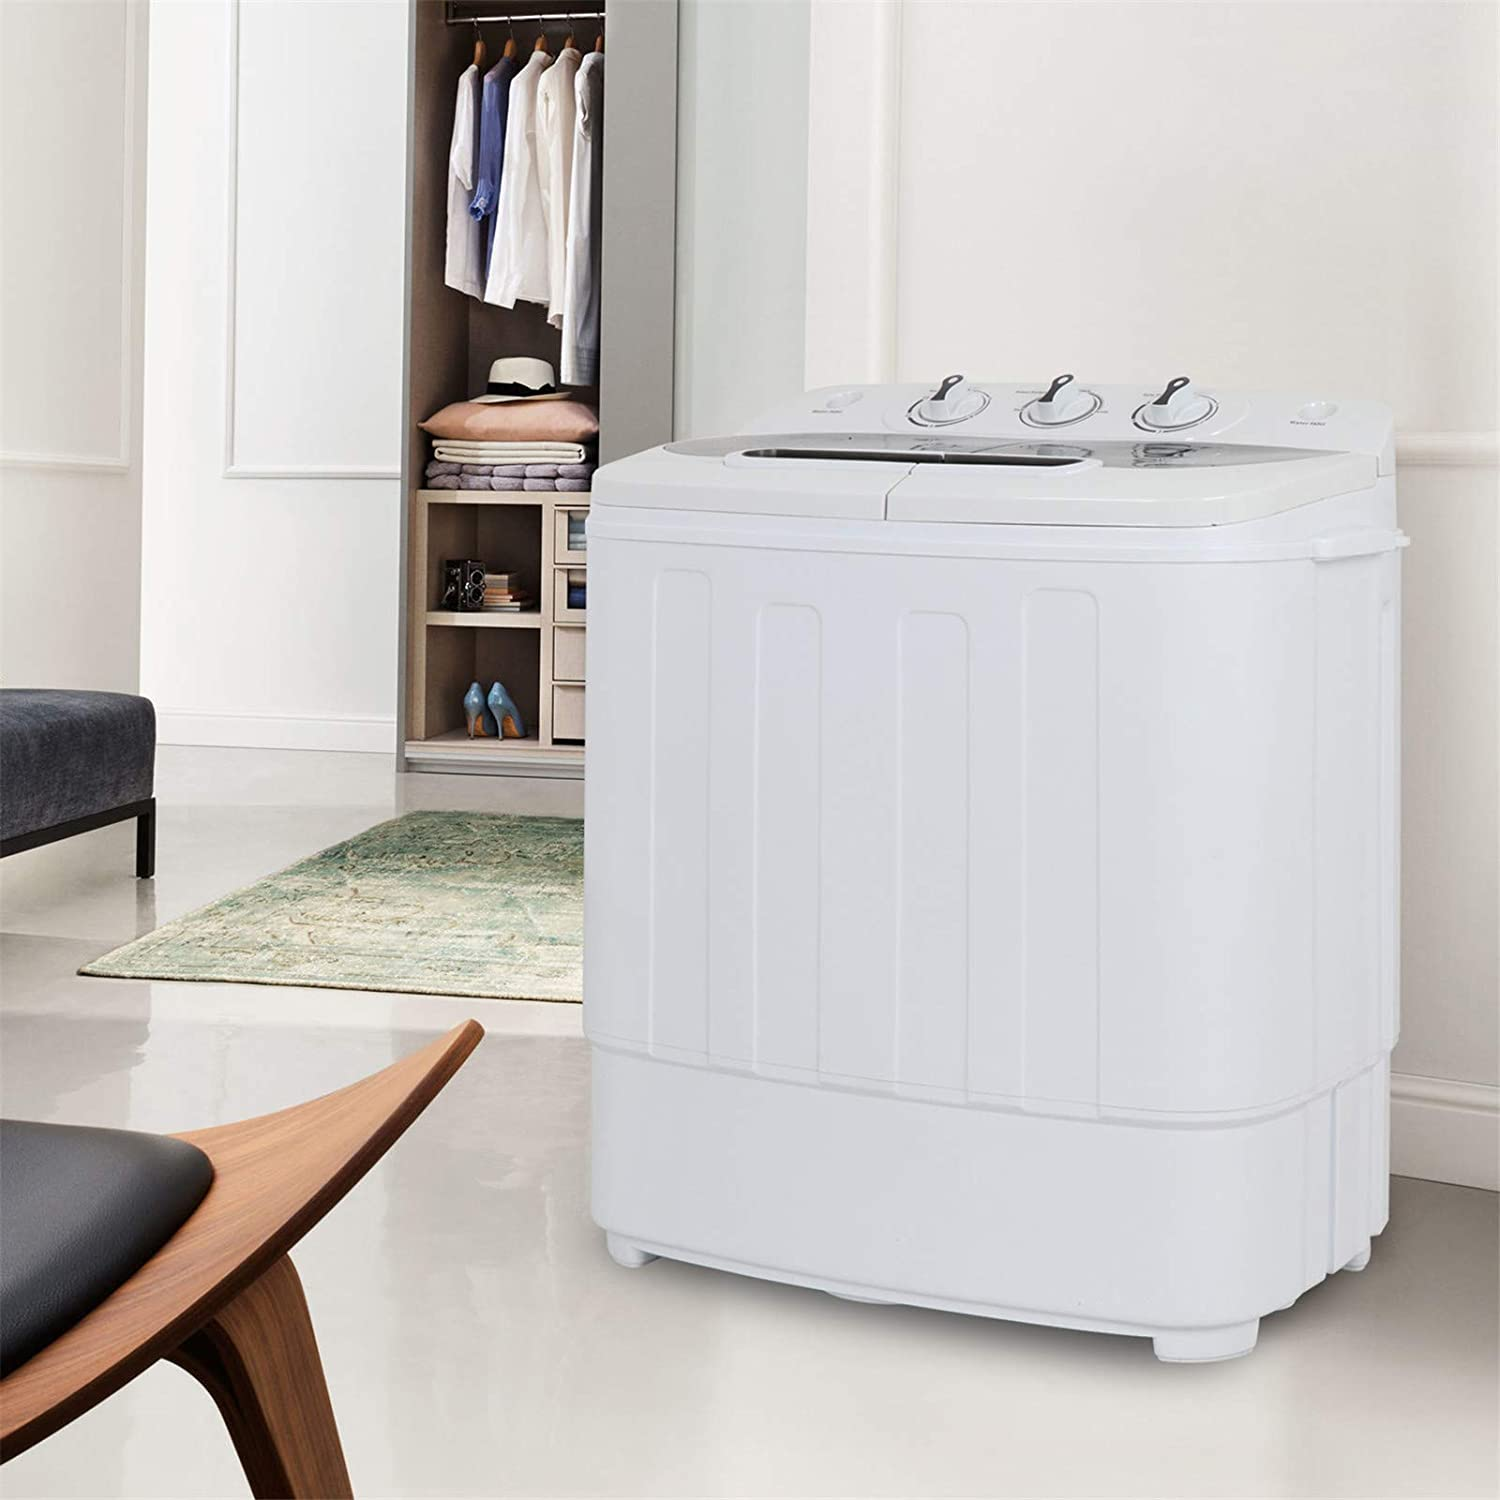 Amazon.com: F2C Portable Mini Compact Automatic Twin Tub Washing Machine 13lbs Capacity Washer Spin Cycle Dryer Spinner W/Drain Pump: Home Improvement